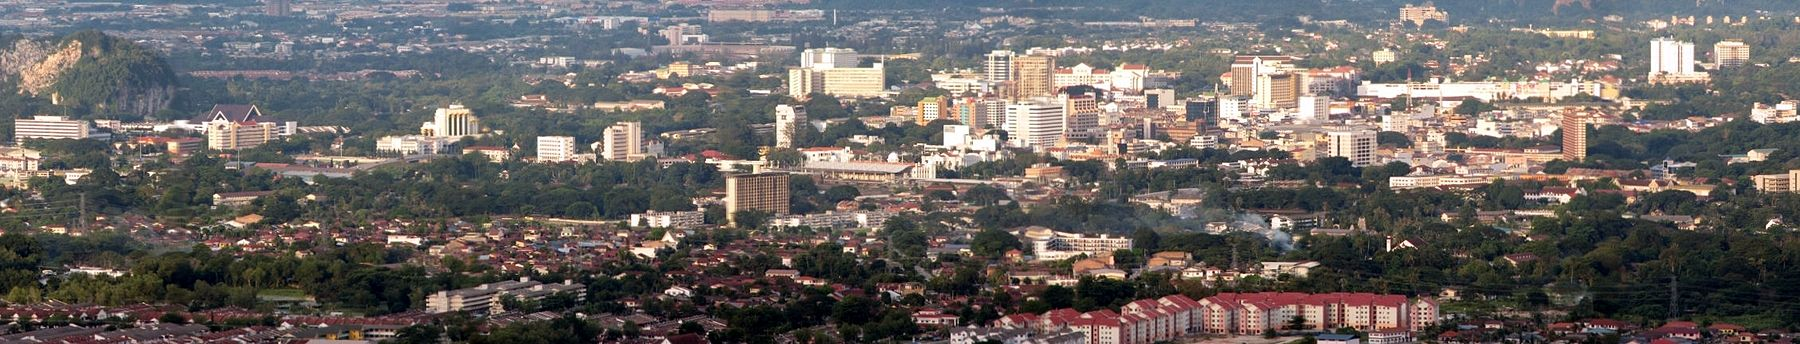 Panorama view of Ipoh